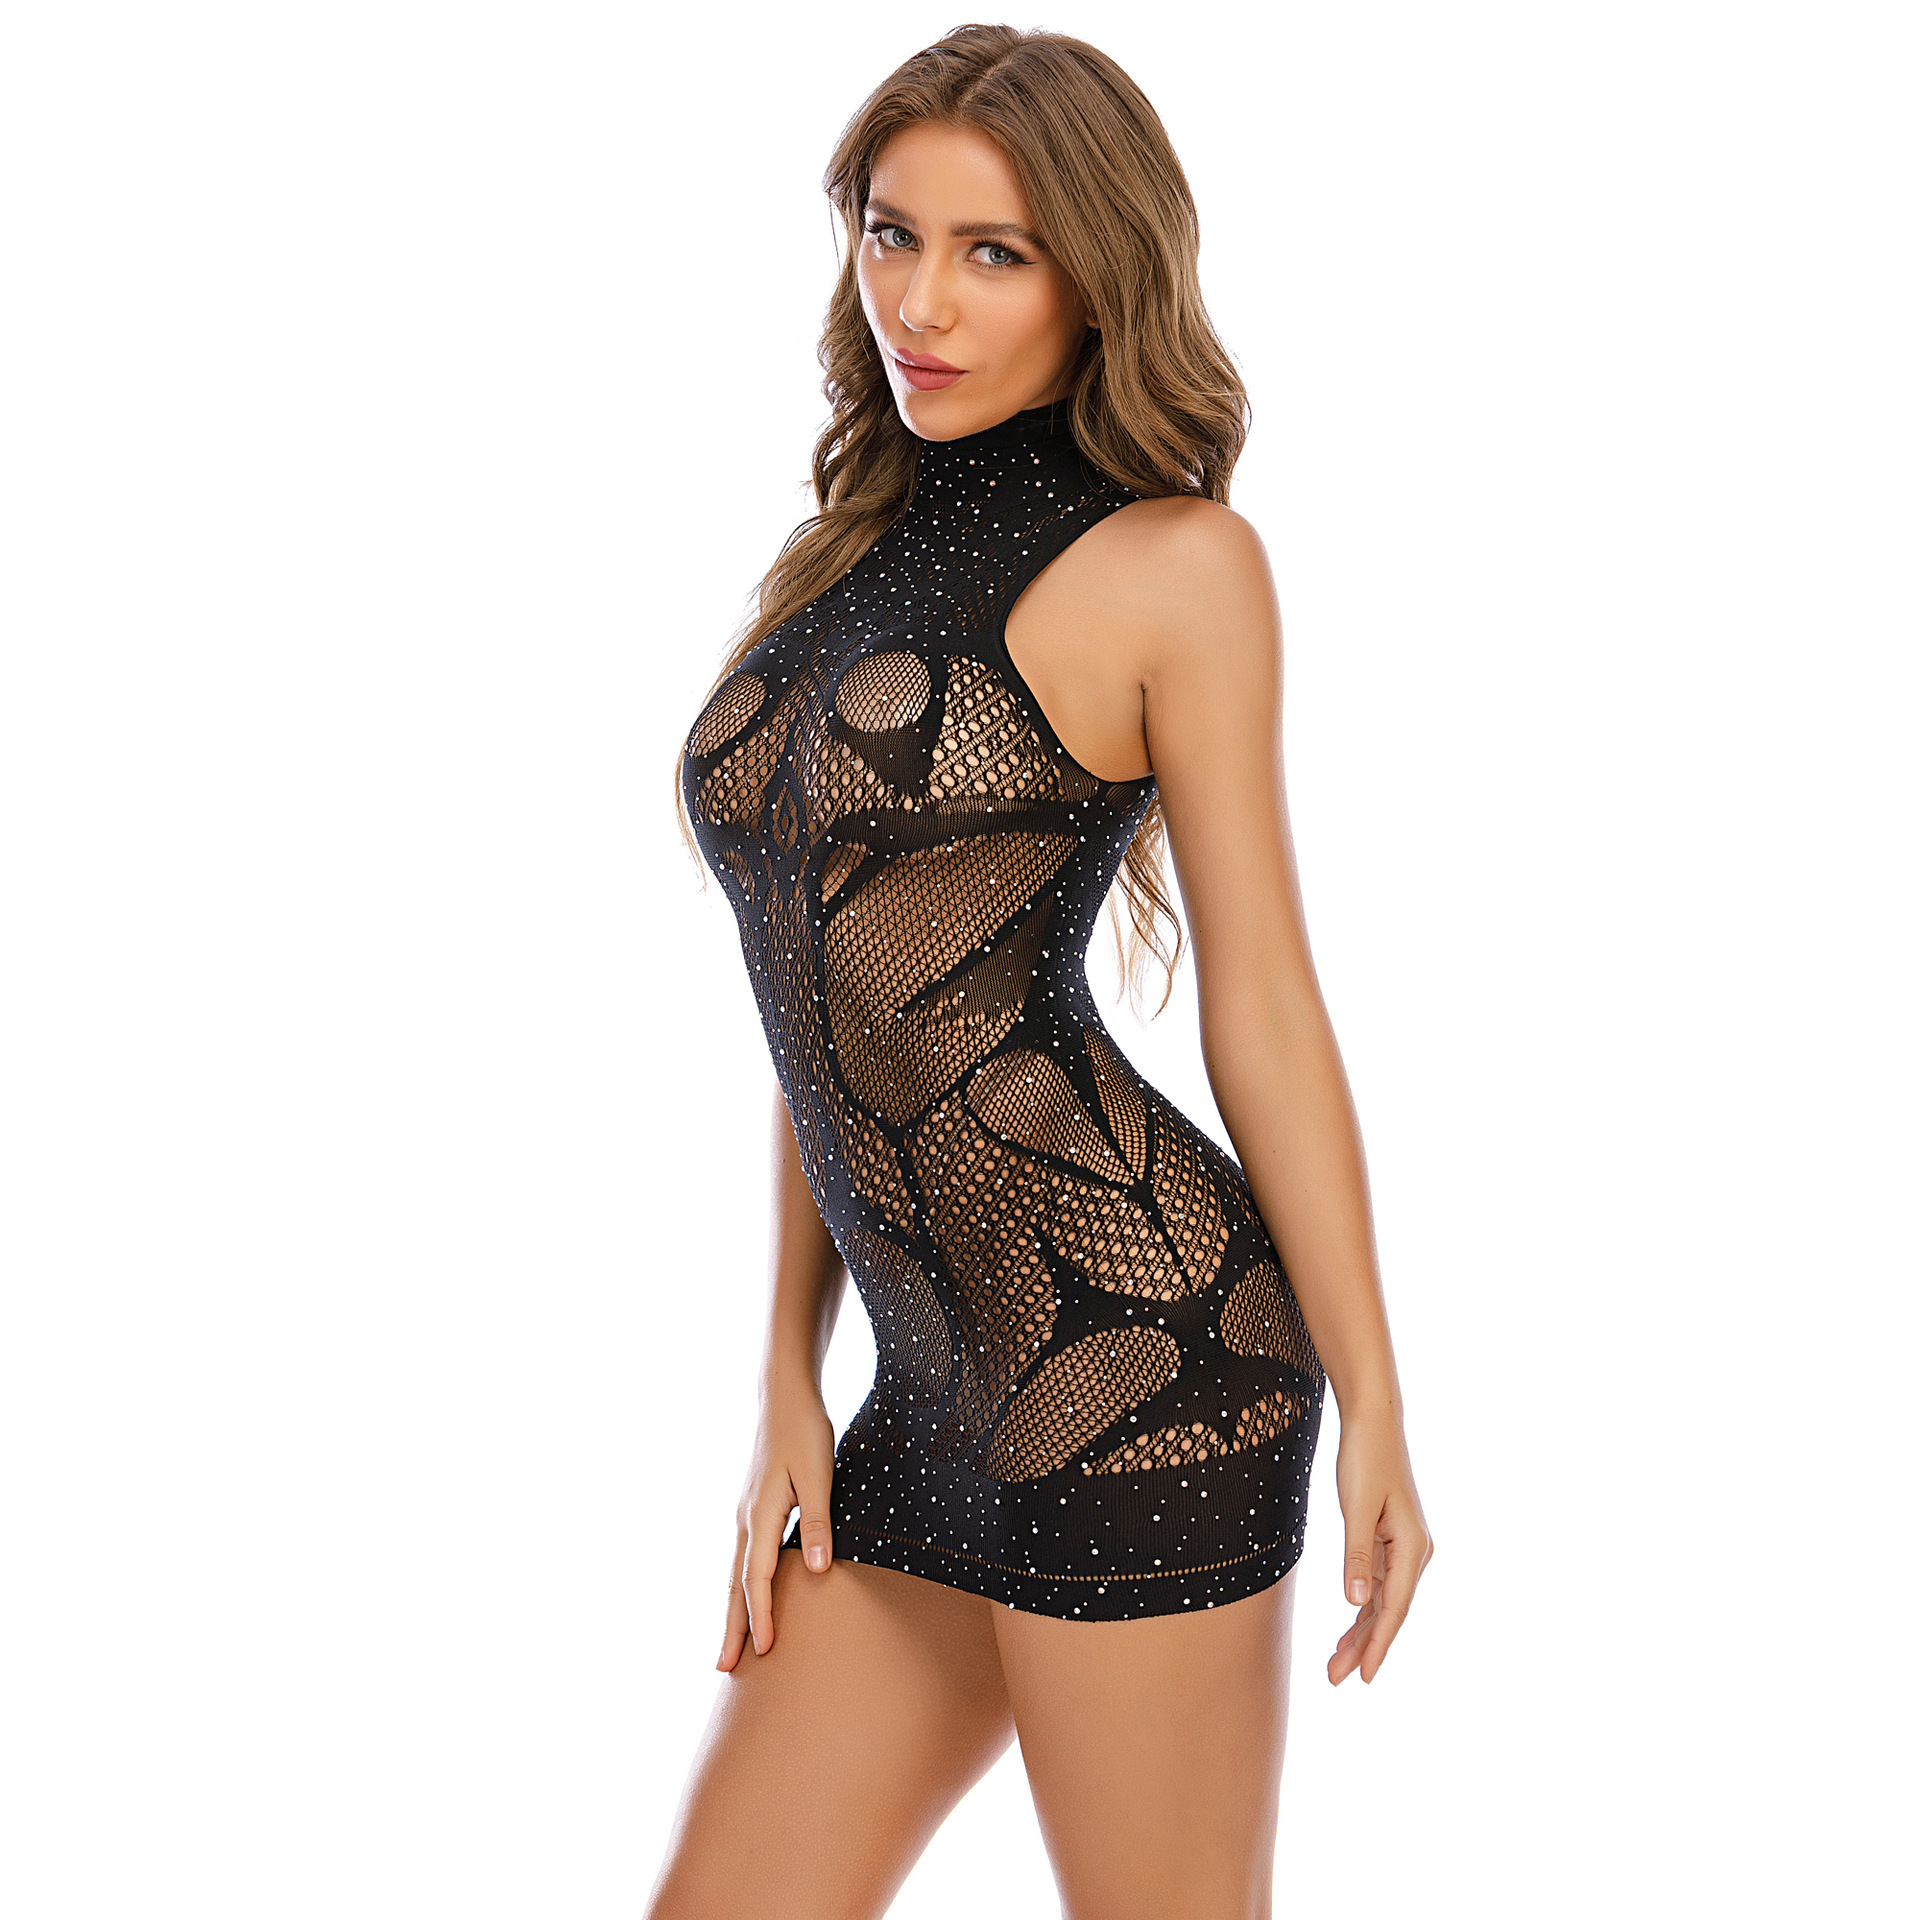 Lace fishnet Bodystocking (2).jpg